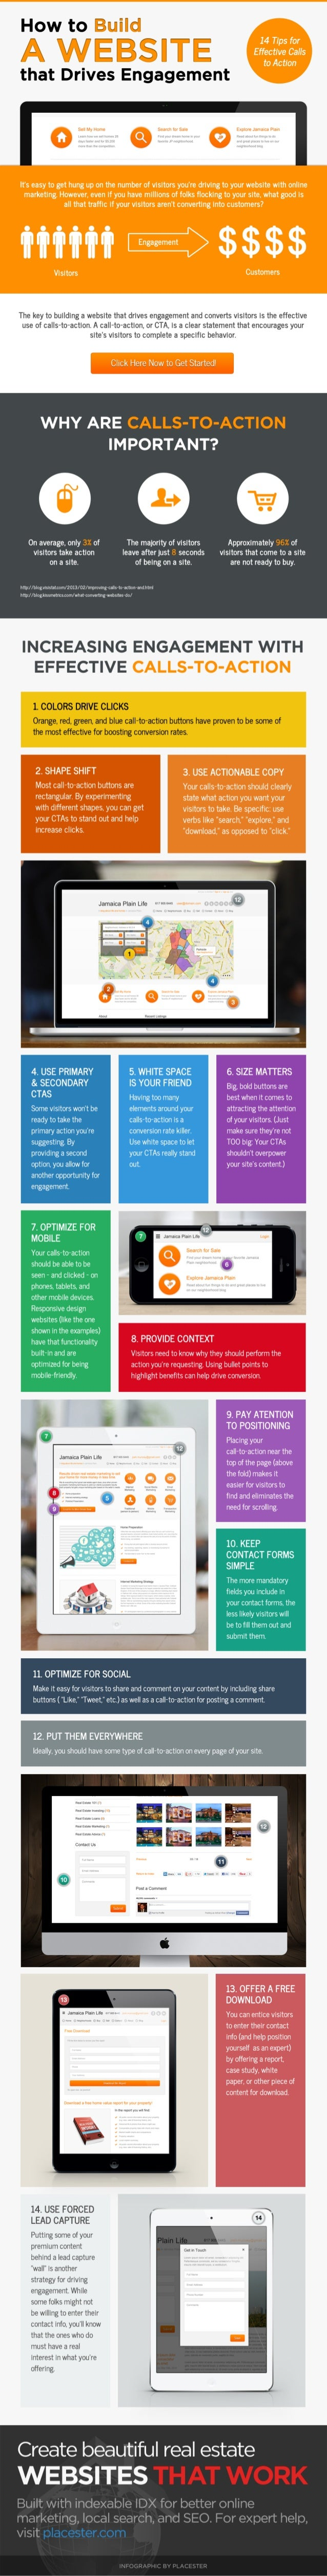 [Infographic] How to Build a Website that Drives Engagement: 14 Tips for Effective Calls-to-Action